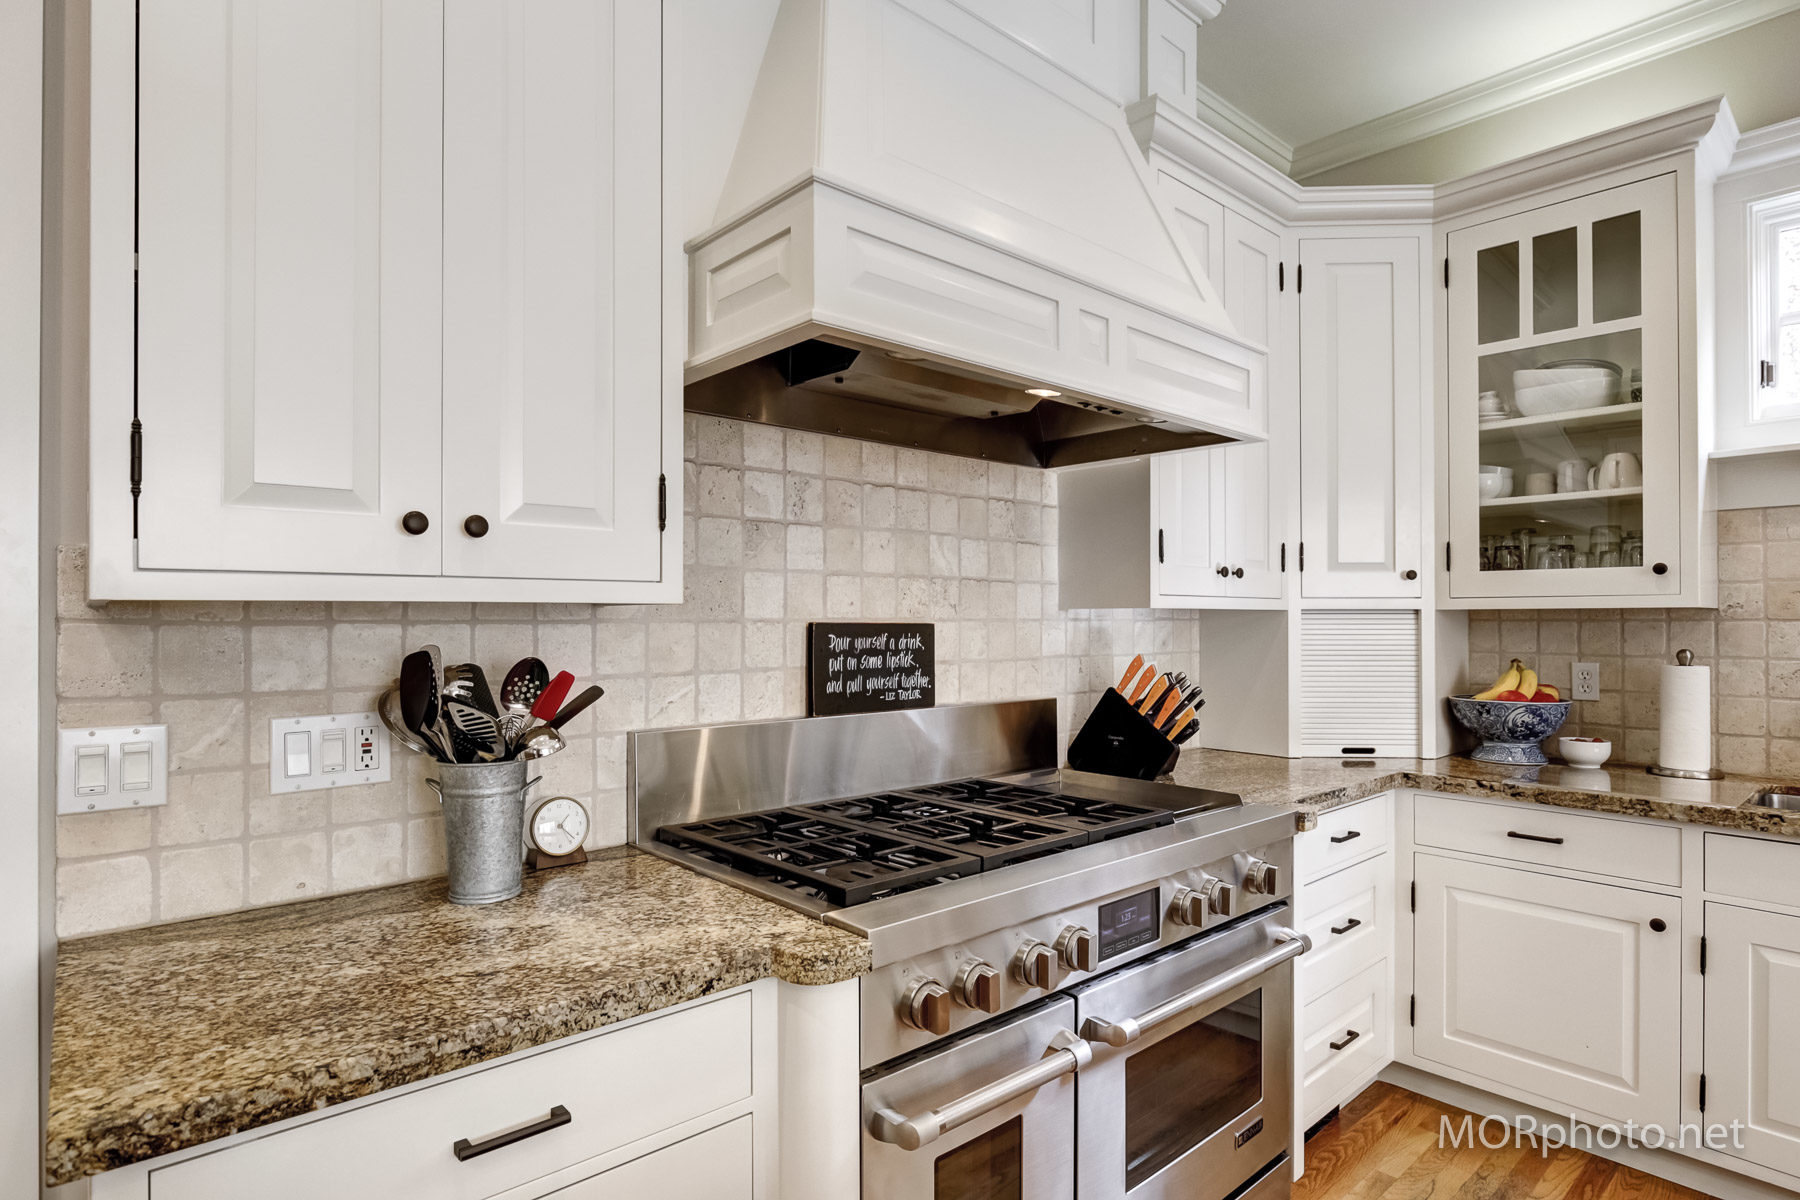 Kitchen Cabinets - Replacement versus Painting | SISU Painting